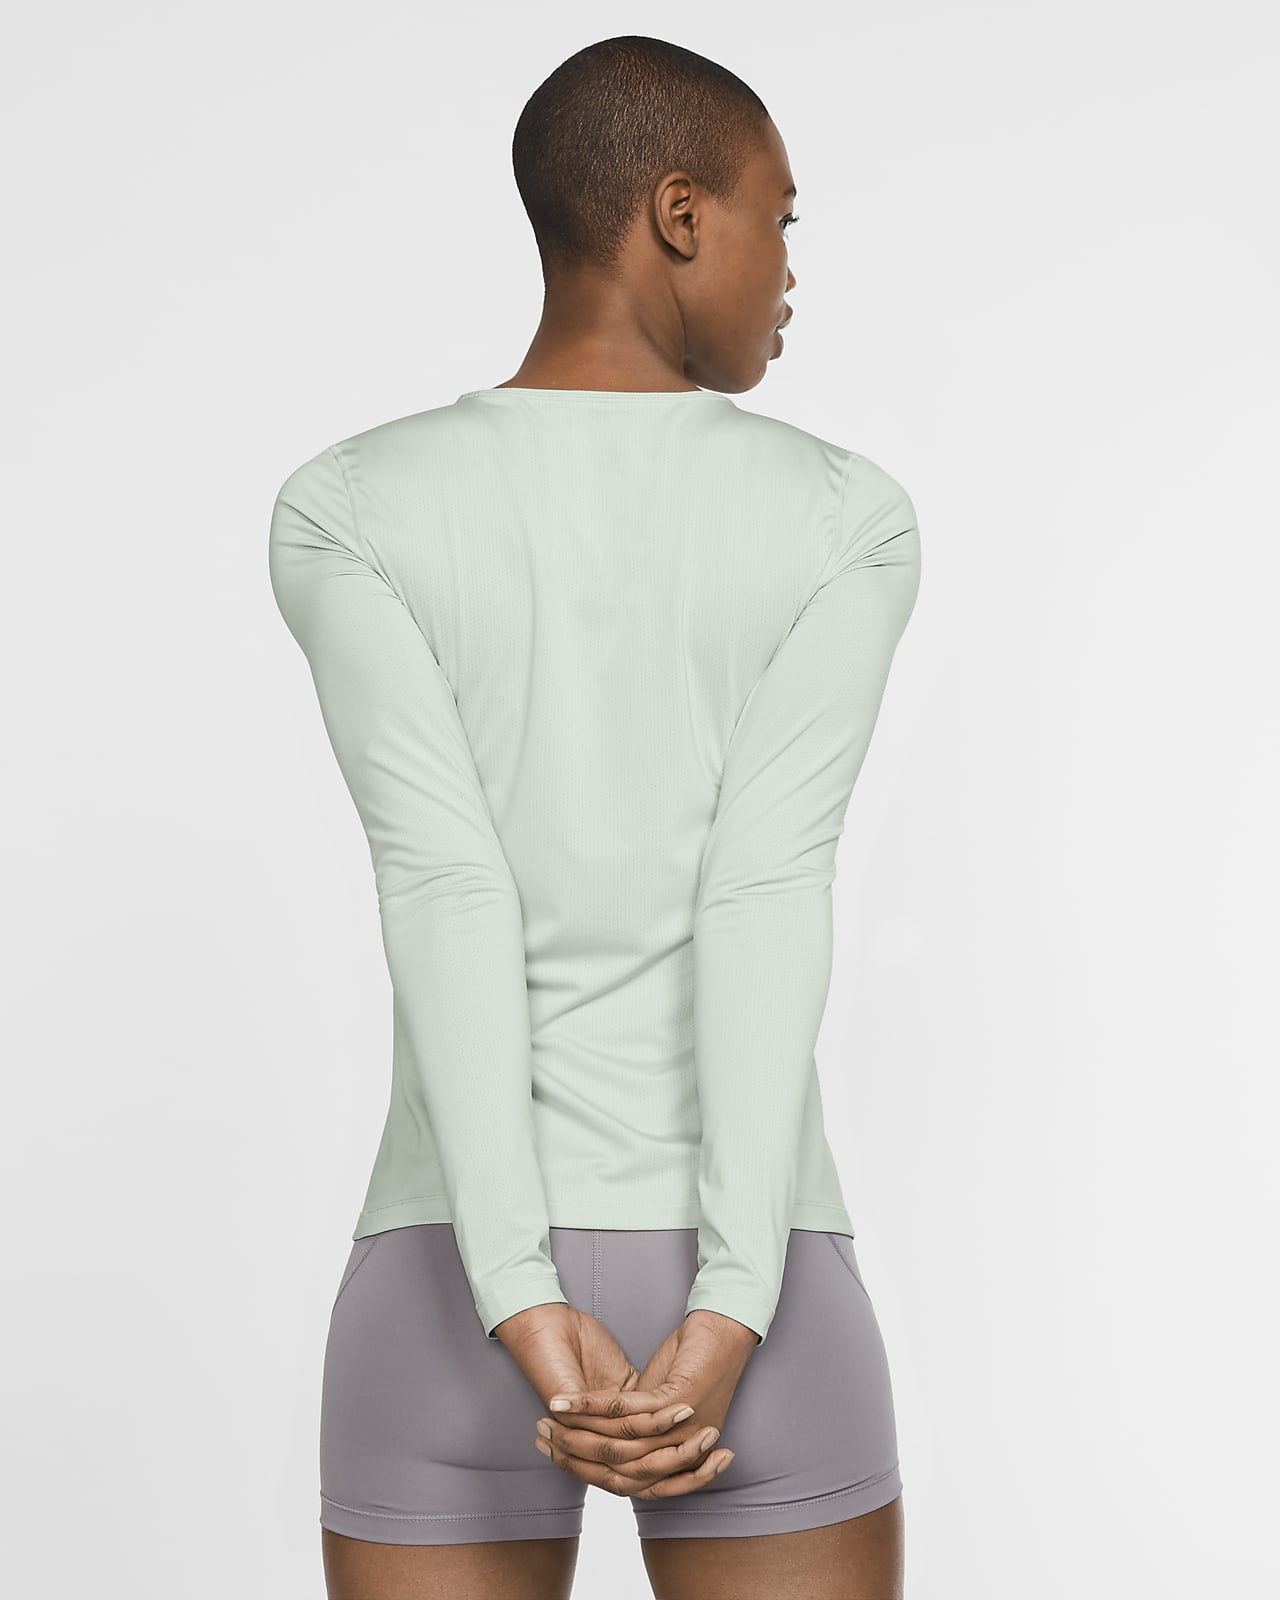 Nike W Pro All Over Mesh t shirt PISTACHIO FROSTWHITE